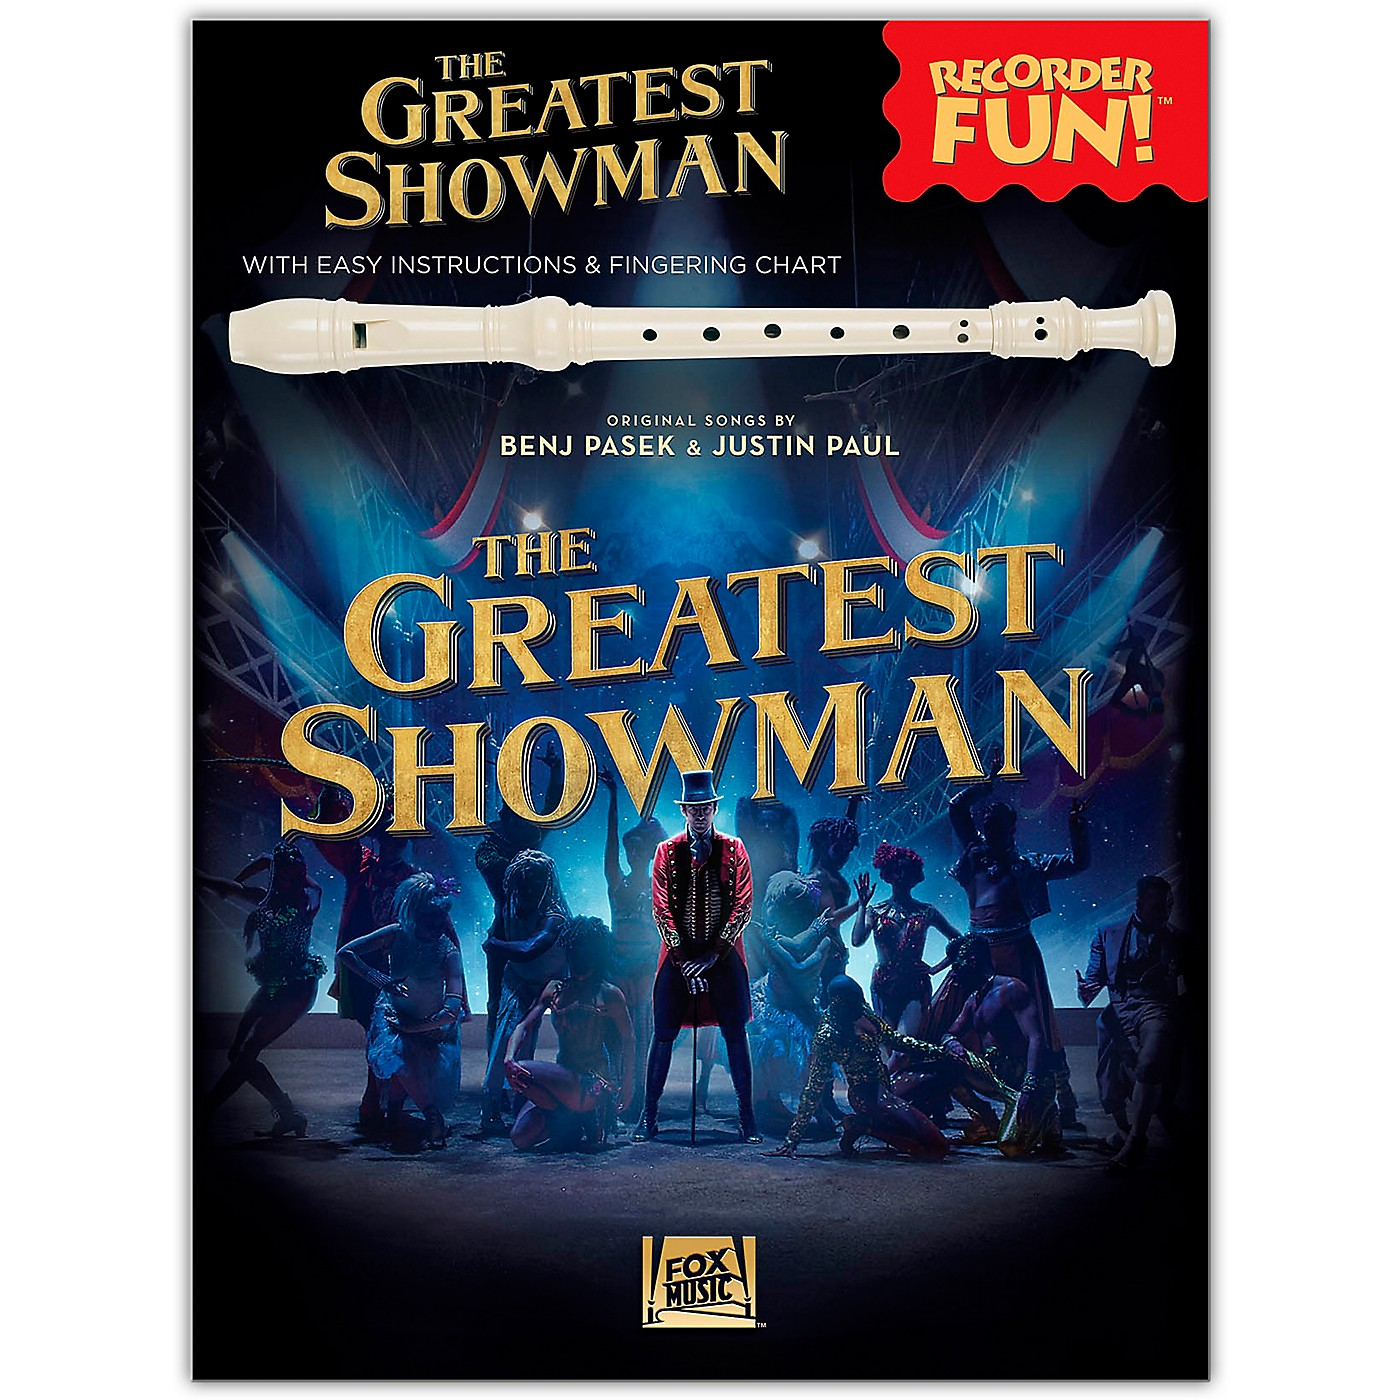 Hal Leonard The Greatest Showman - Recorder Fun! (with Easy Instructions & Fingering Chart) Recorder Songbook thumbnail